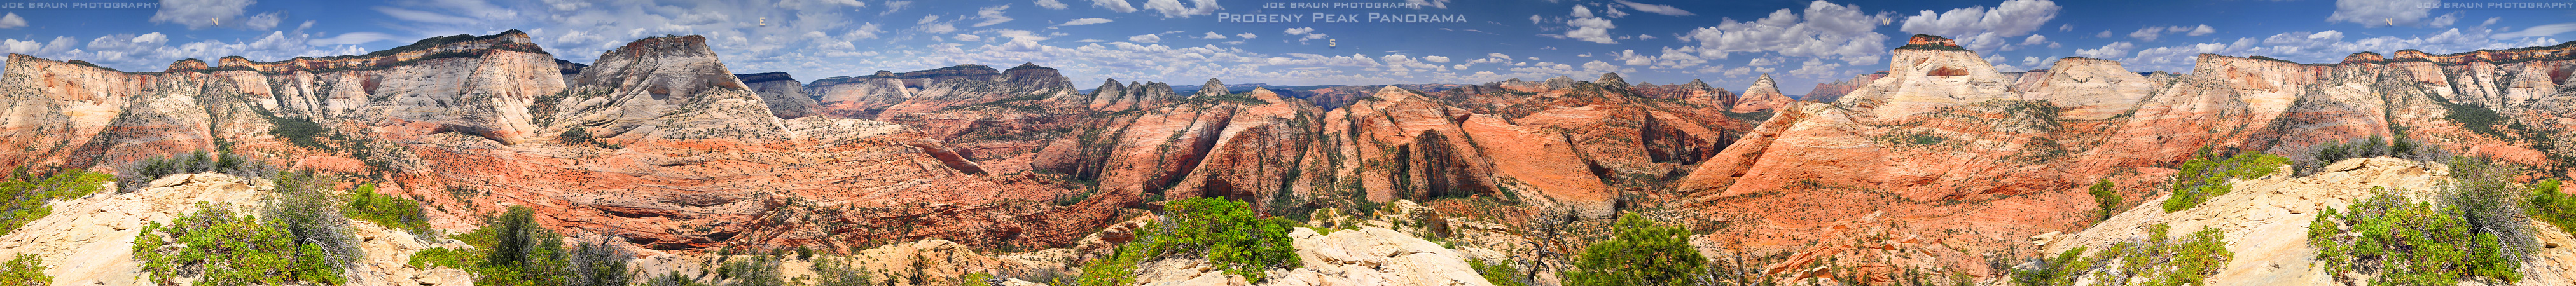 Progeny Peak Panorama -- © 2009 Joe Braun Photography